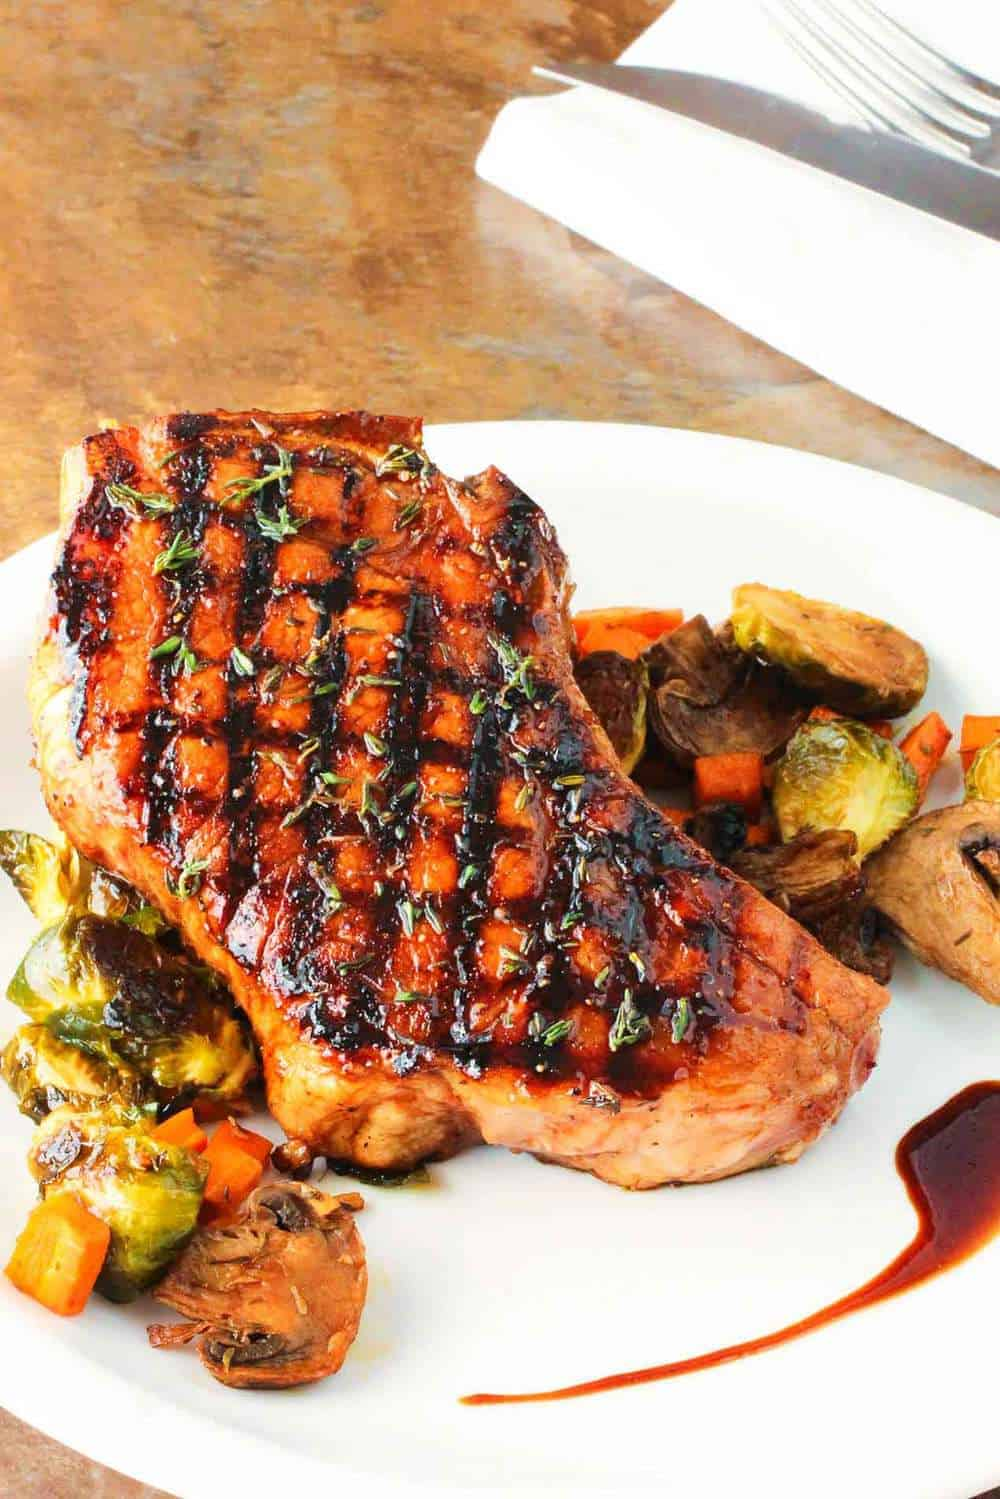 Balsamic Grilled Pork Chops Recipe